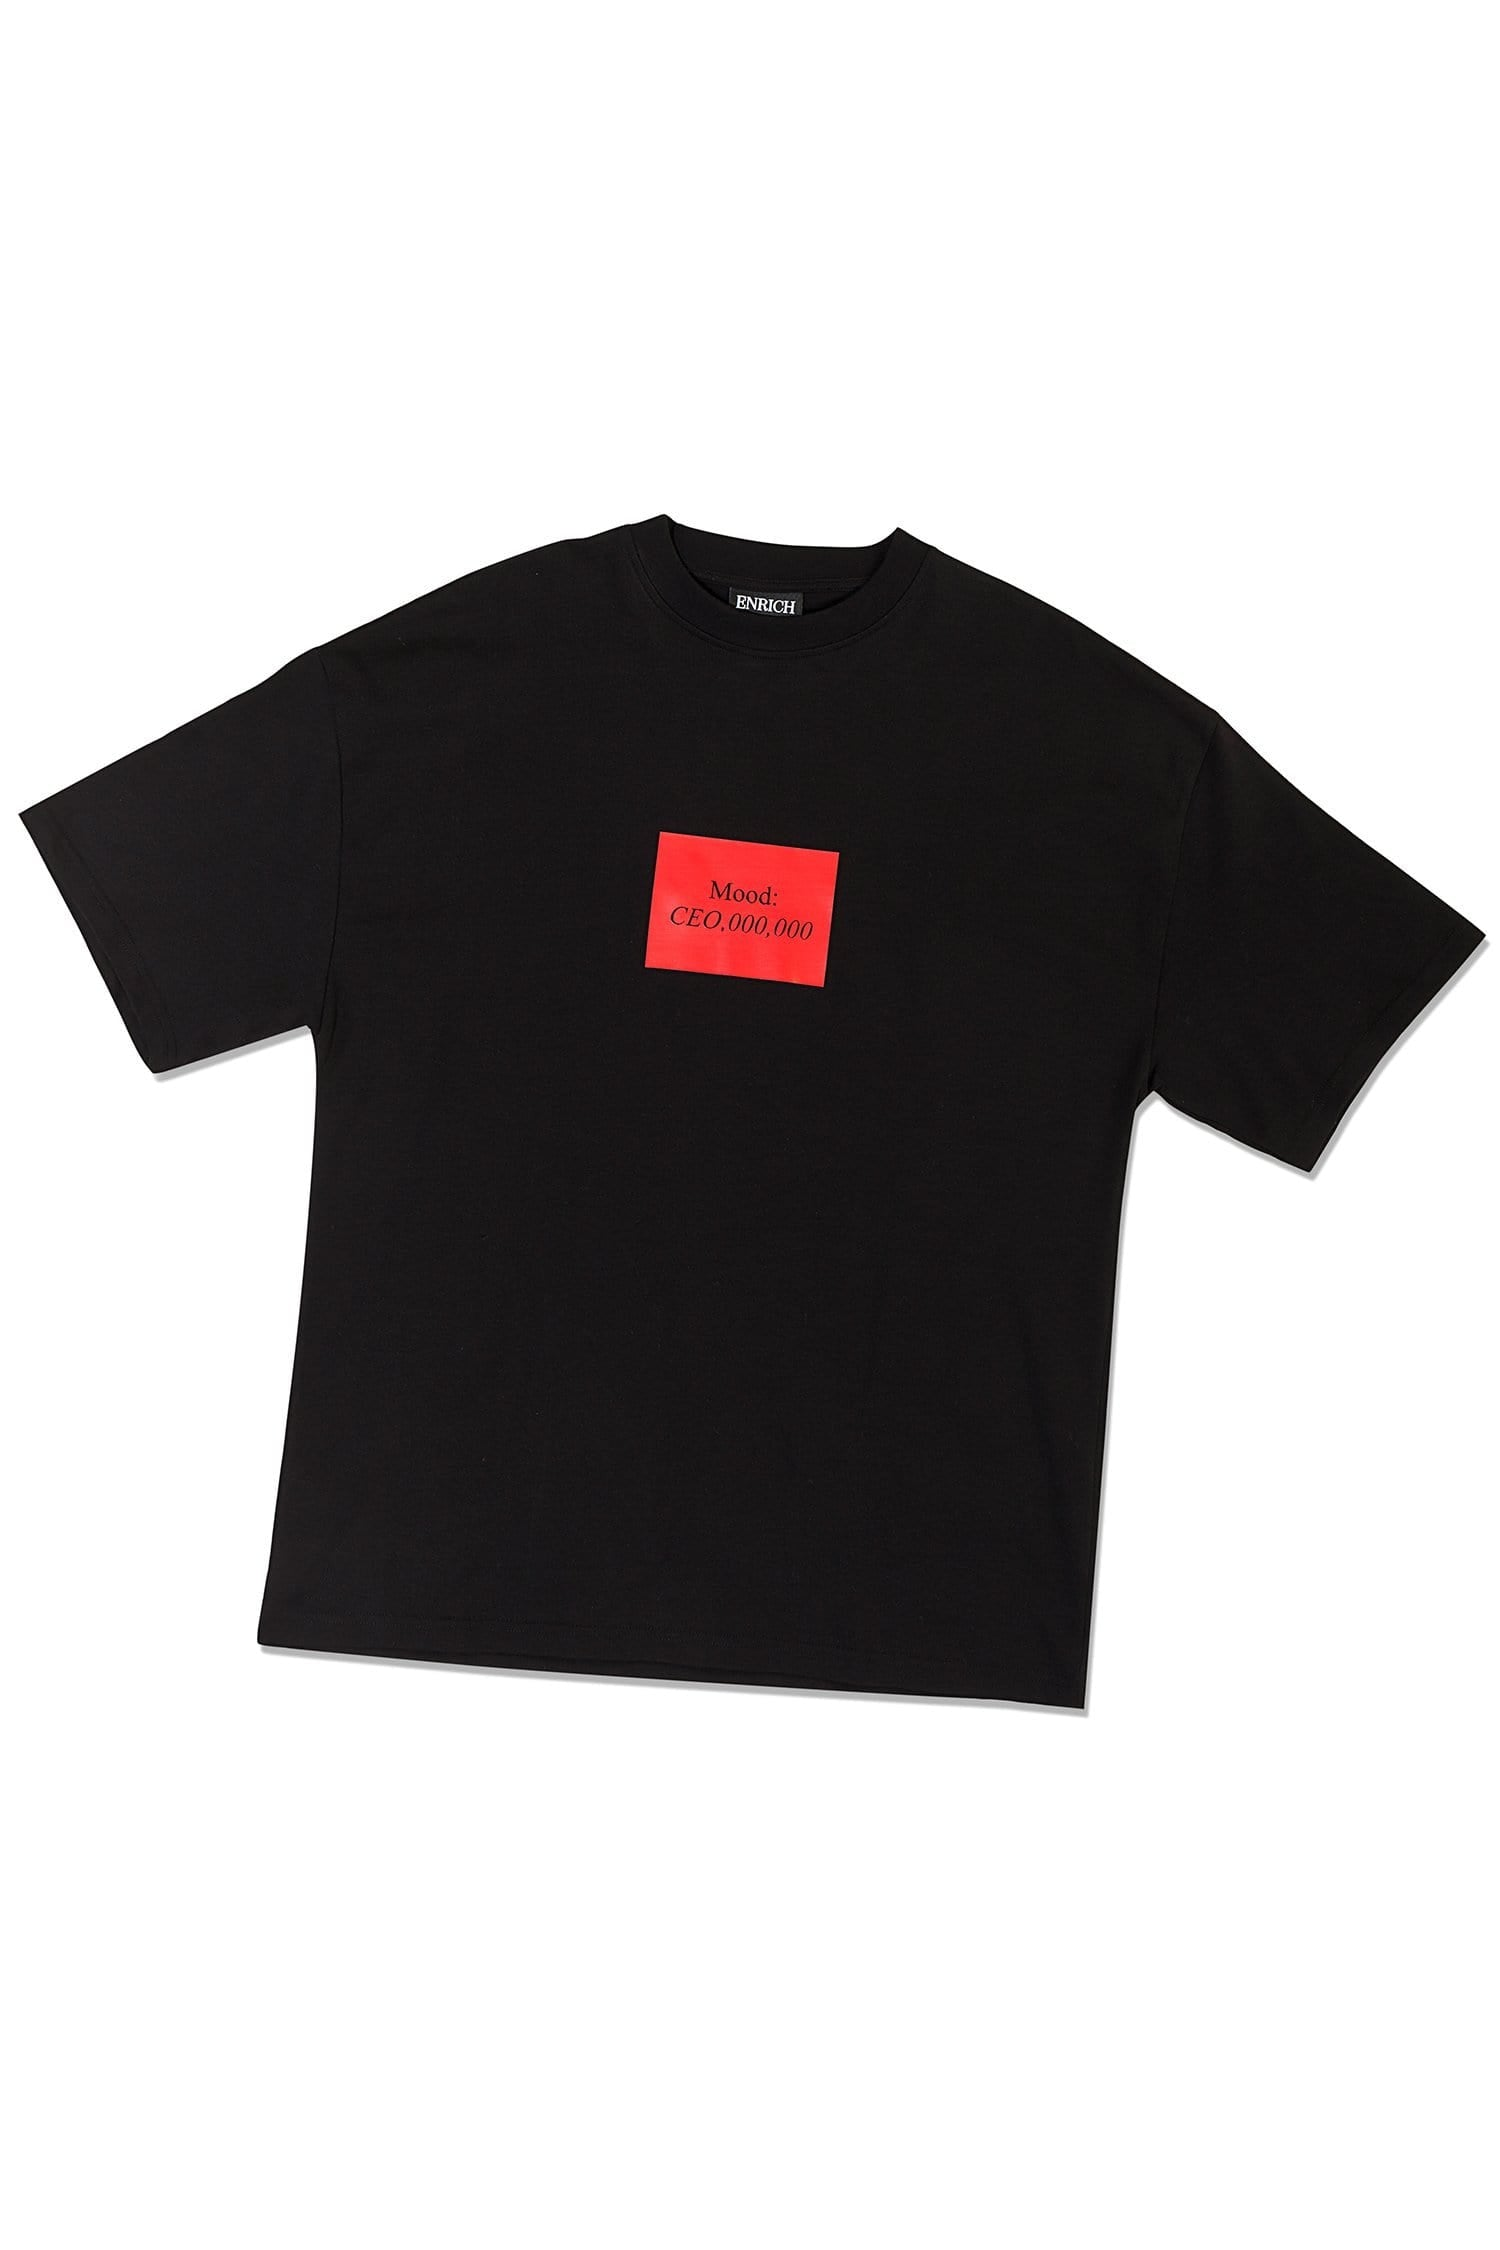 Unisex Black Tee - Mood CEO Slogan Square